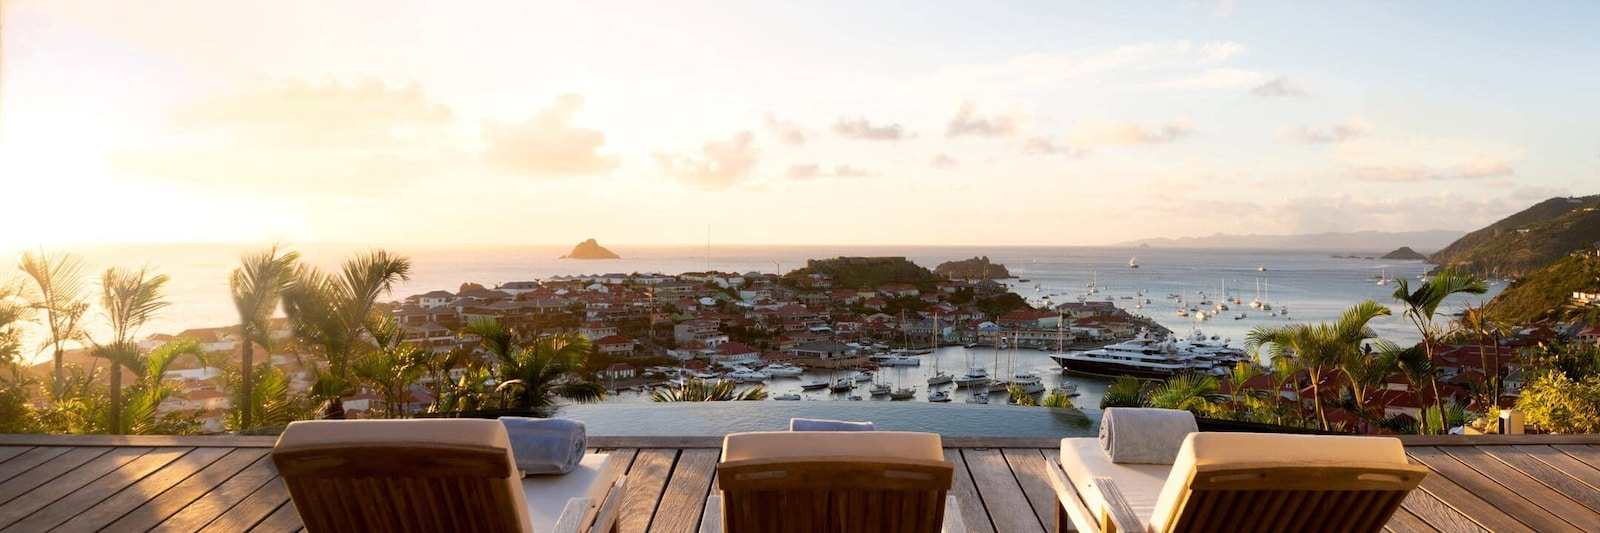 Luxury rentals in Saint Barthélemy